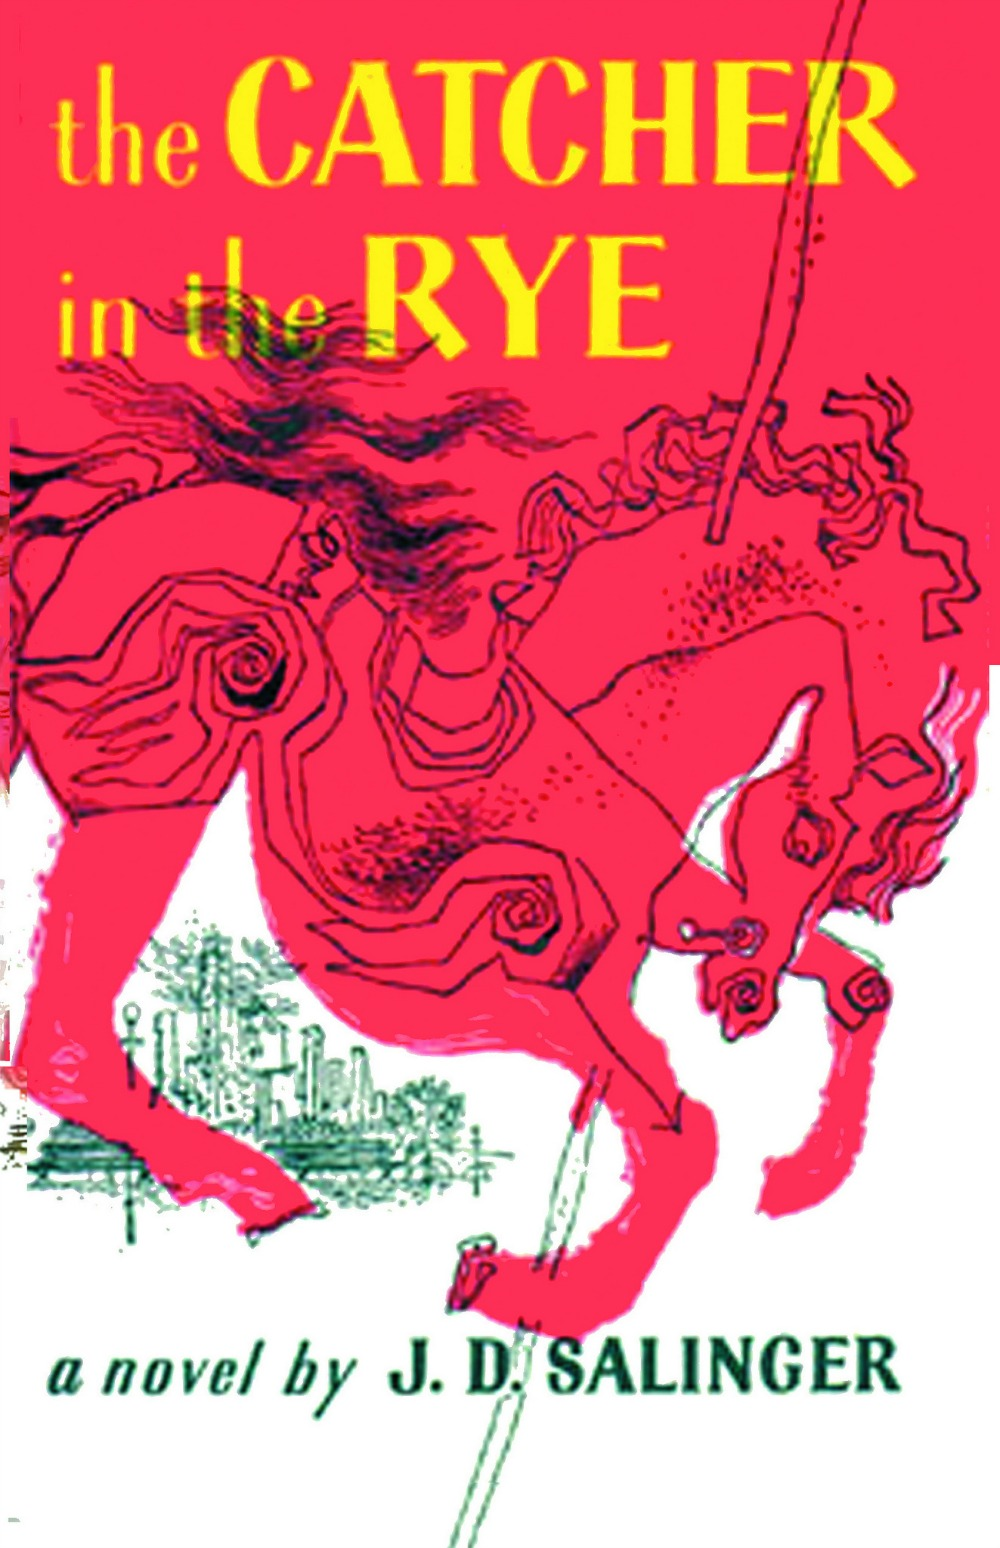 catcher-in-the-rye-cover | © PROsamhsloan@gmail.com/Flickr